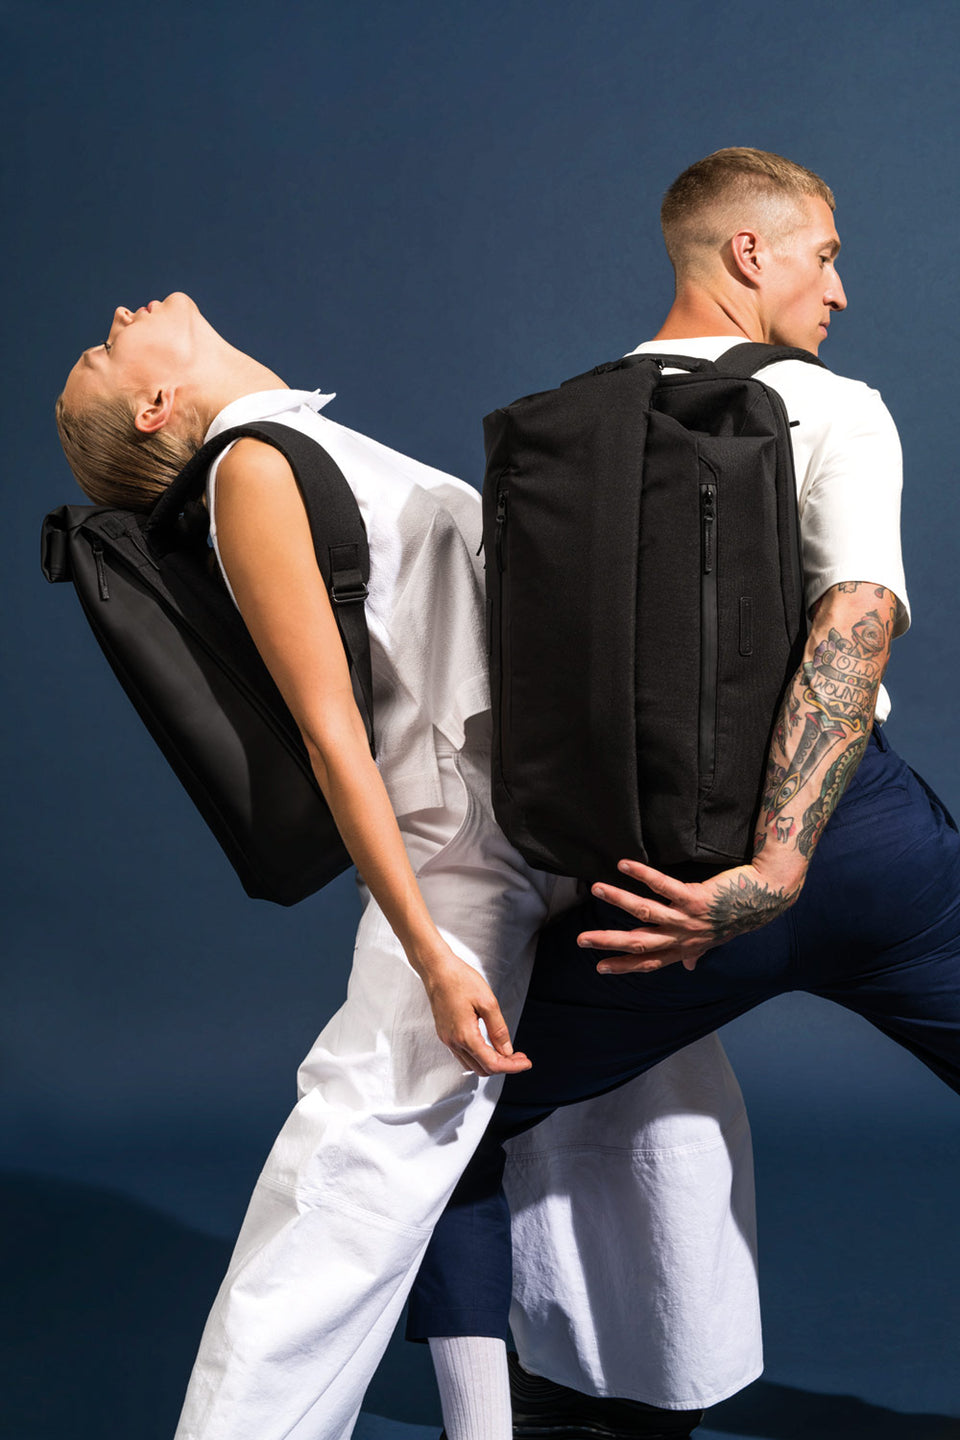 Ucon Acrobatics Bags and Packs